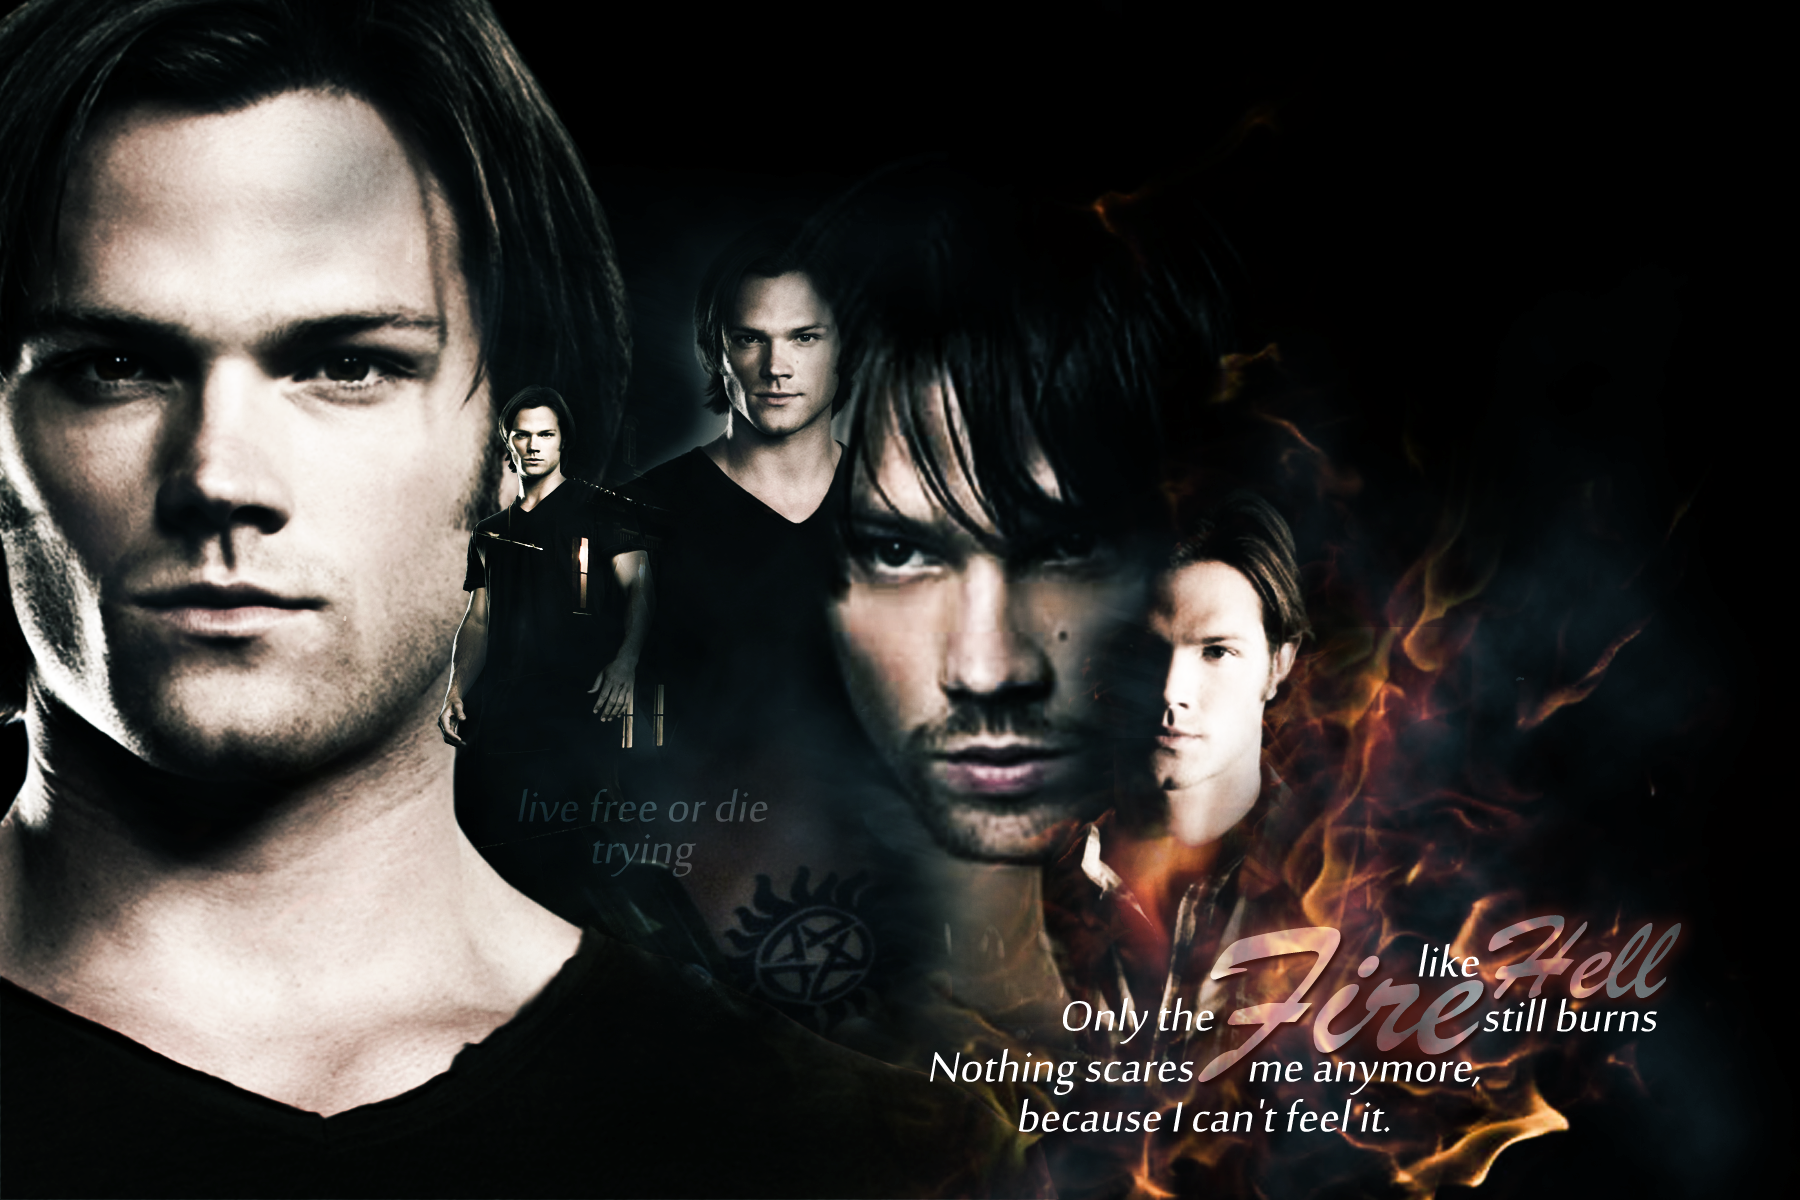 Jared padalecki quotes - Jared Padalecki Wallpaper By Lovewillbiteyou Jared Padalecki Wallpaper By Lovewillbiteyou